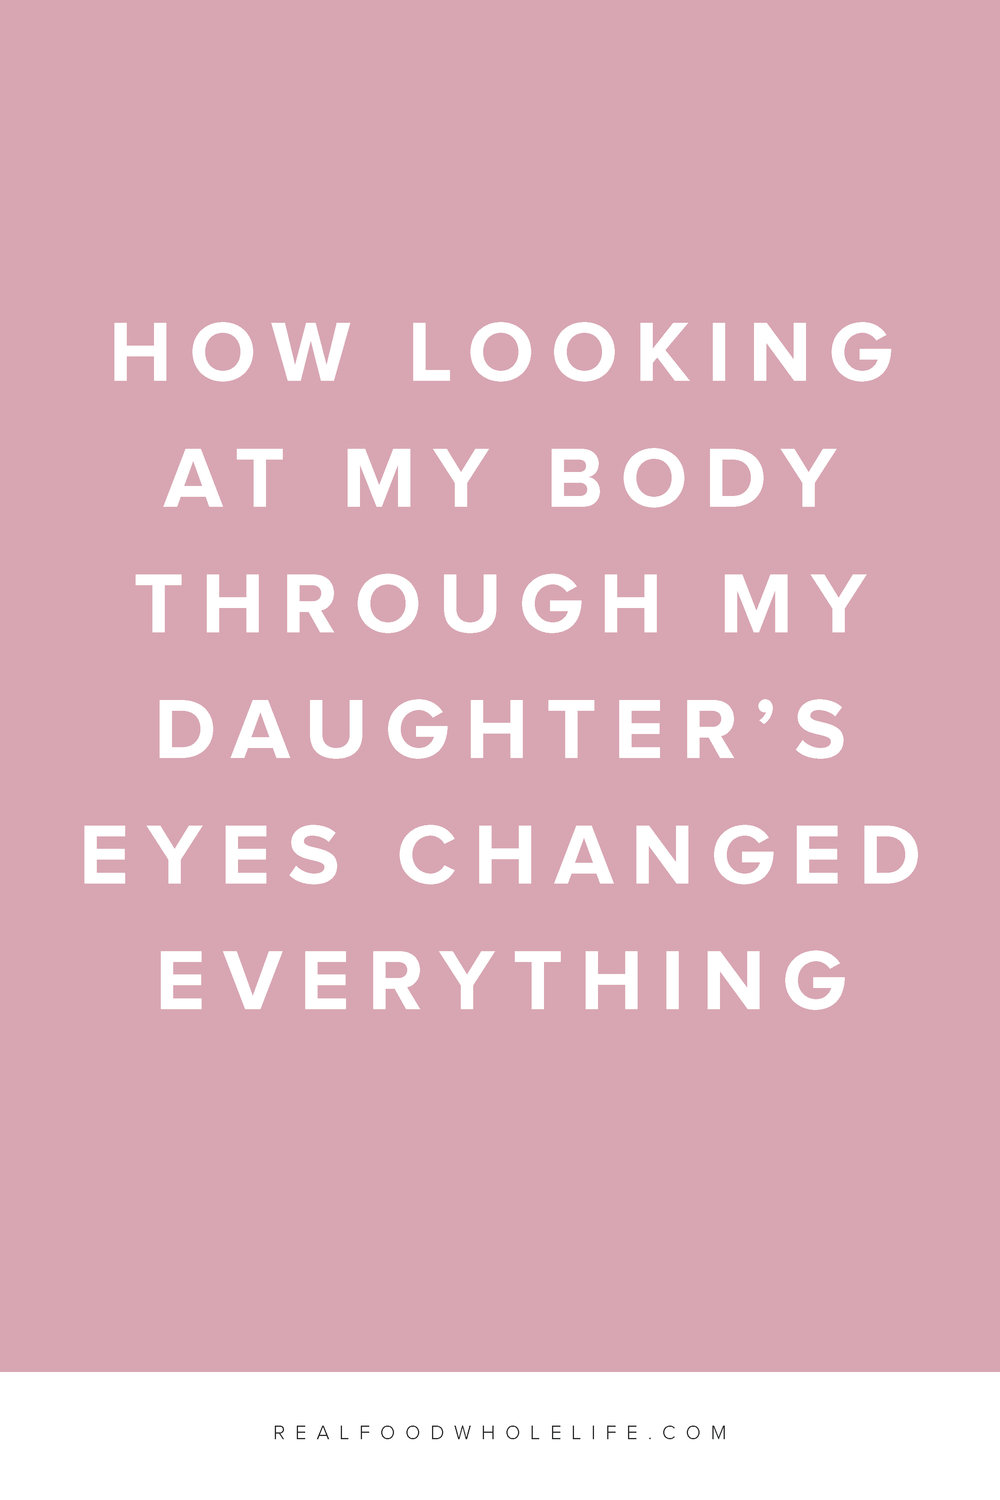 How looking at my body through my daughter's eyes changed everything. #realfoodwholelife #feelgoodeffect #gentleisthenewperfect #practicegentle #bodylove #acceptance #selflove